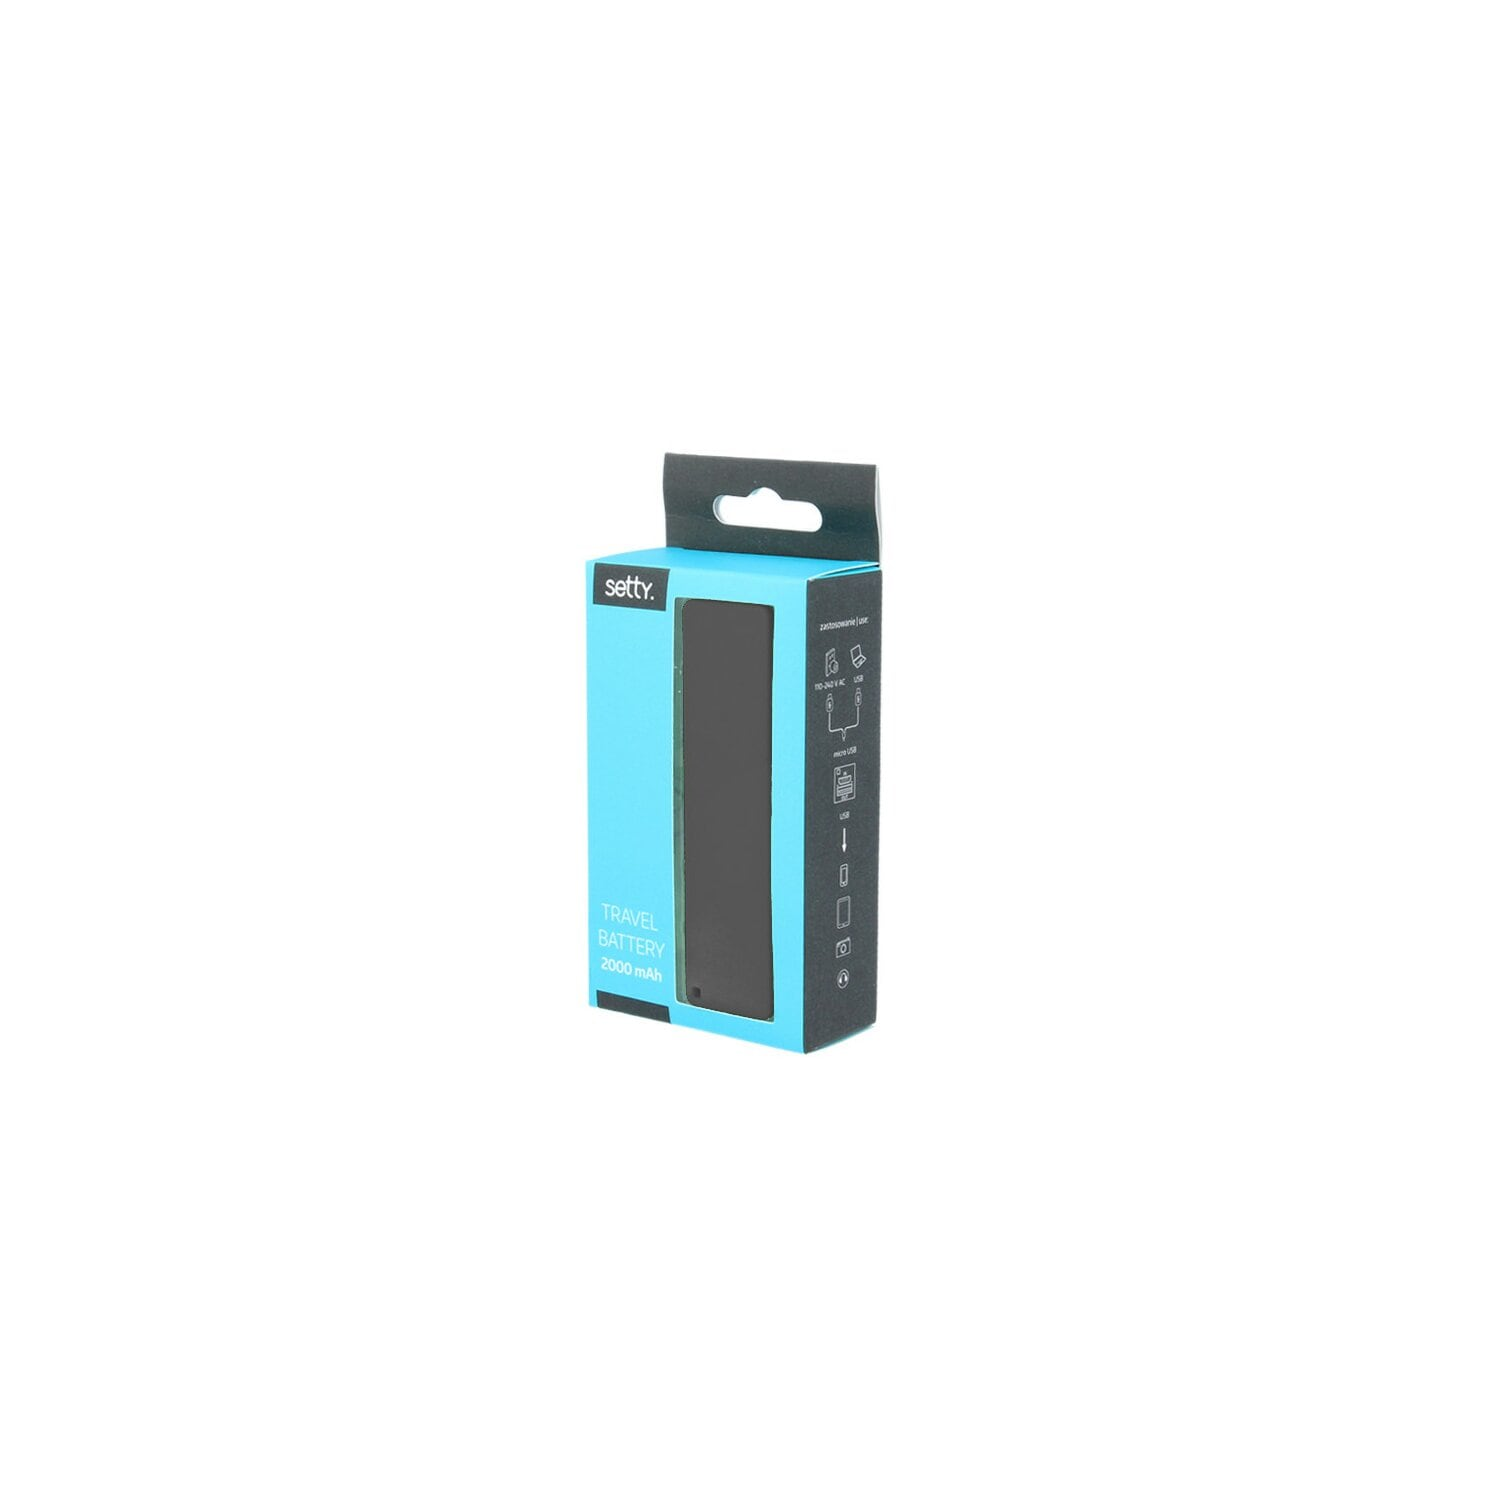 Powerbank FOREVER TF1 Setty 2000mah Czarny